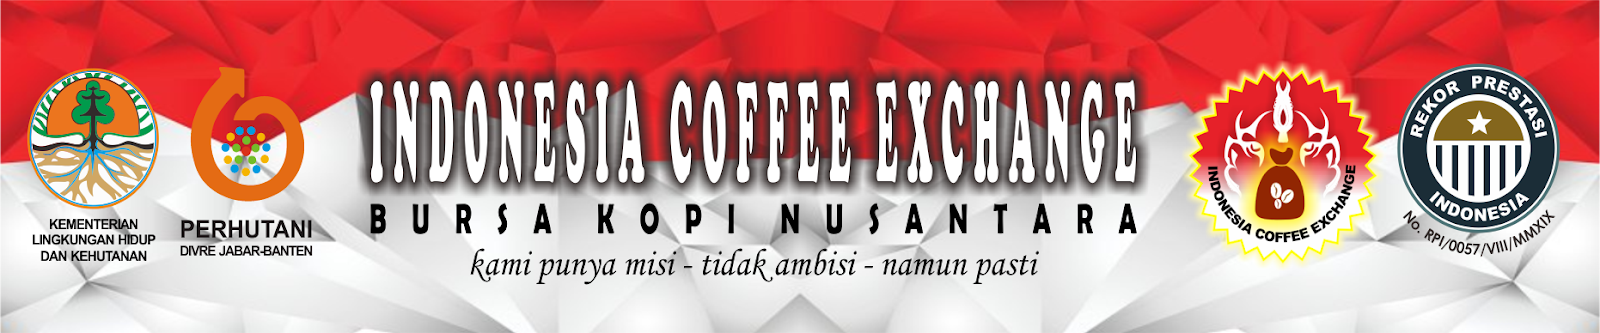 Indonesia Coffee Exchange